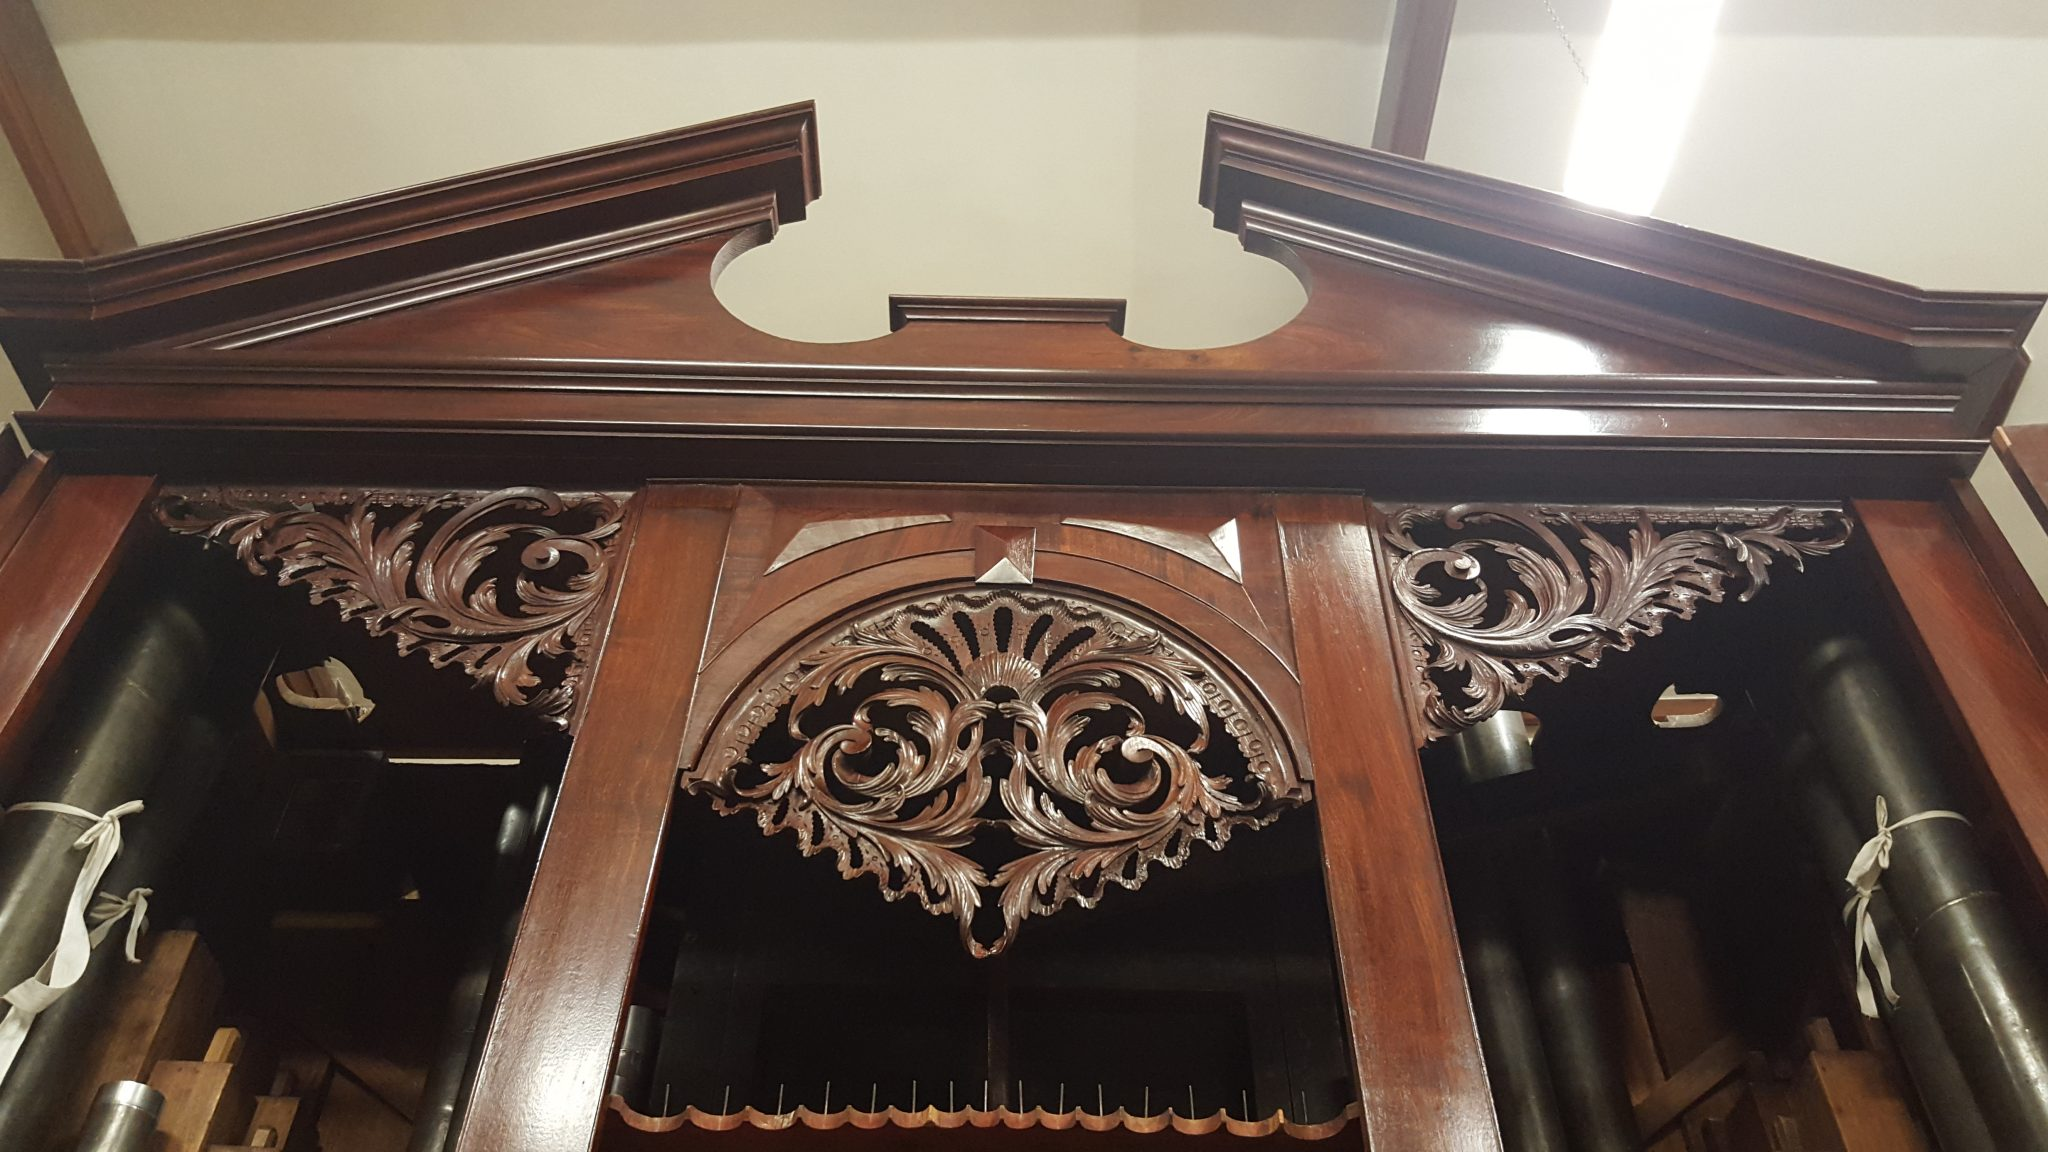 Clare college in Cambridge, pipe organ case 1755, restoration, pipe shades after repairs, Laurent Robert woodcarving